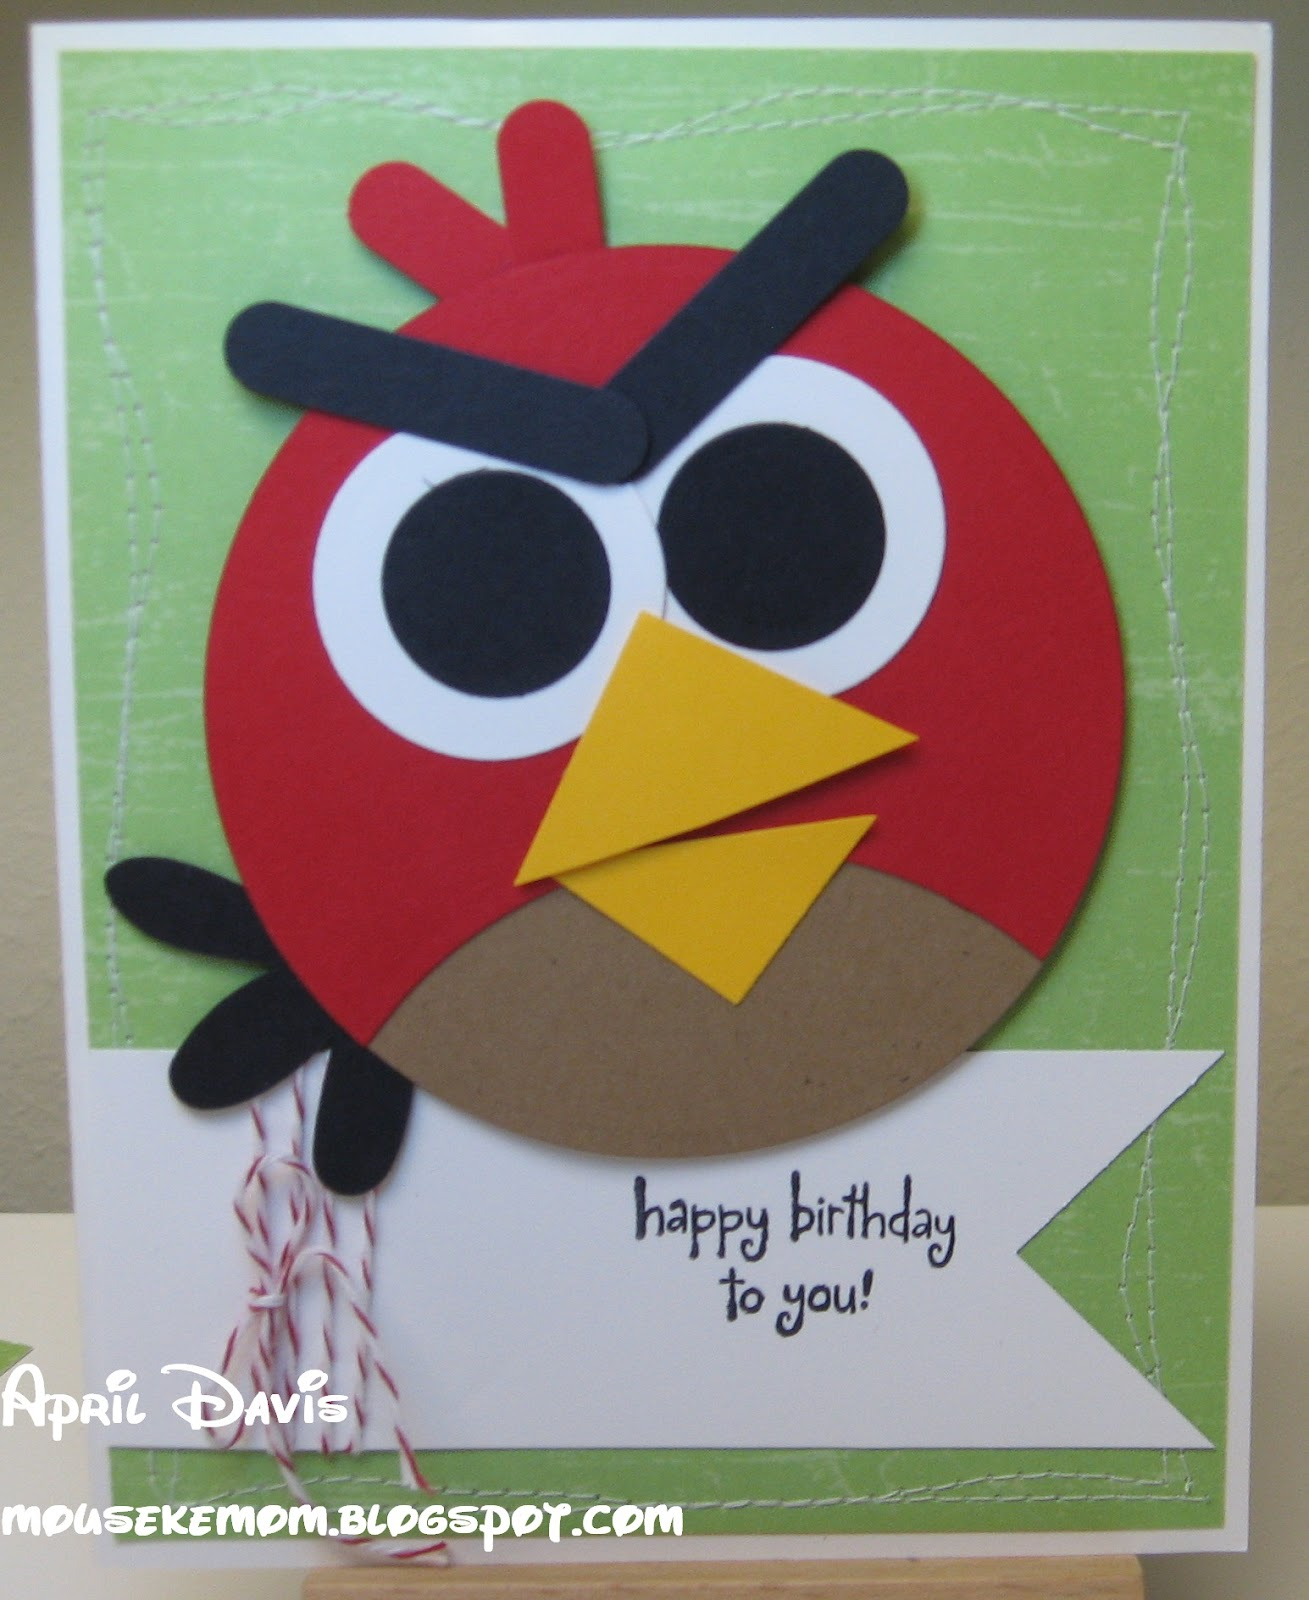 Mousekemom's Mouseworks: Angry Birds Birthday Card